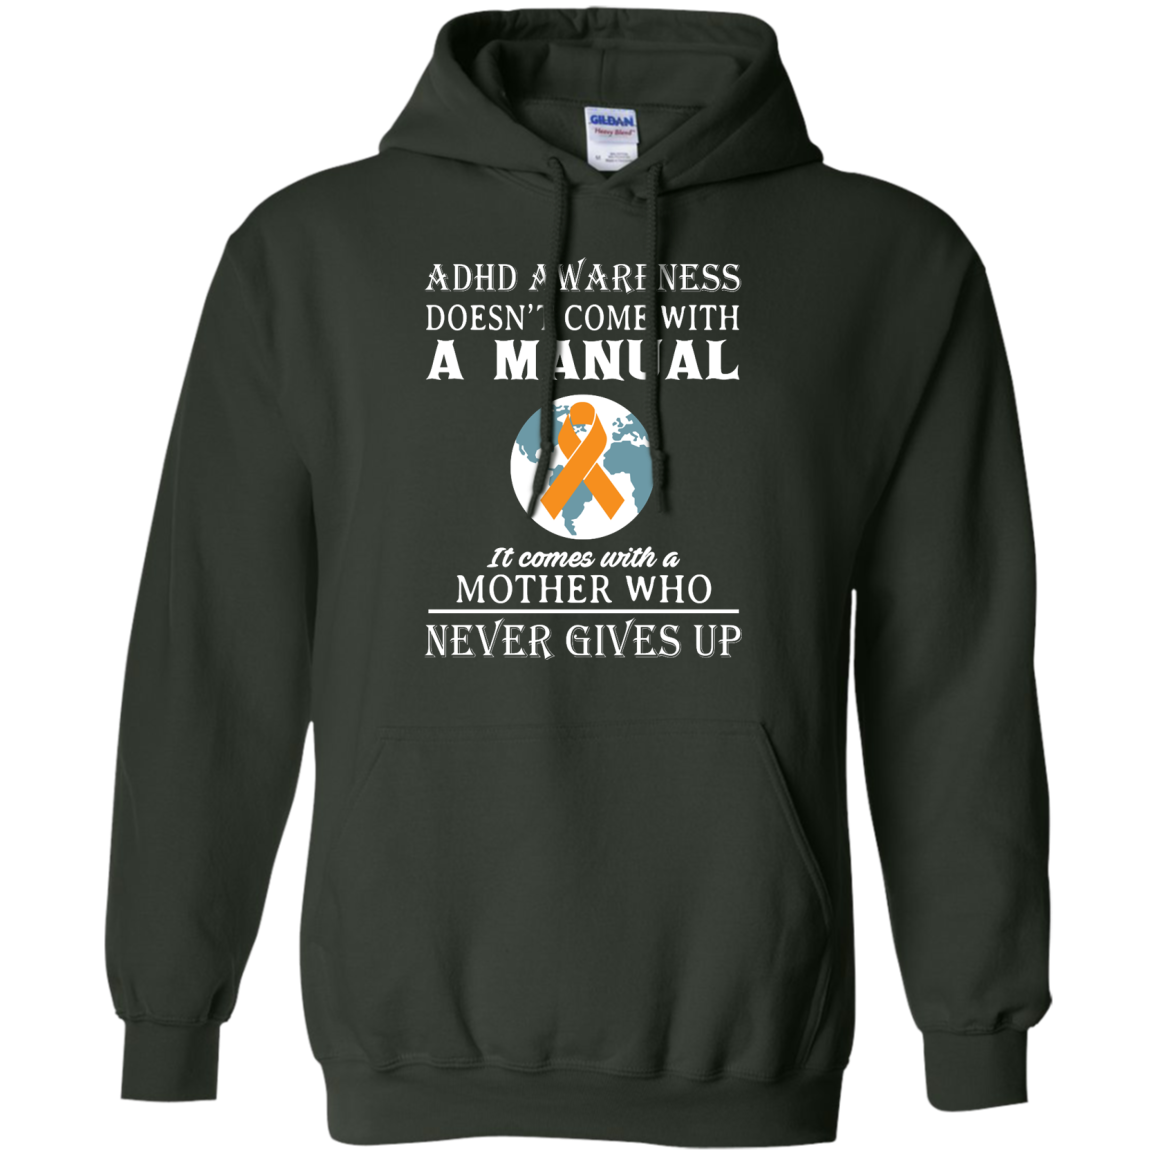 image 274px Adhd Awareness Shirt: It Come With a Mother Who Never Gives Up T Shirts